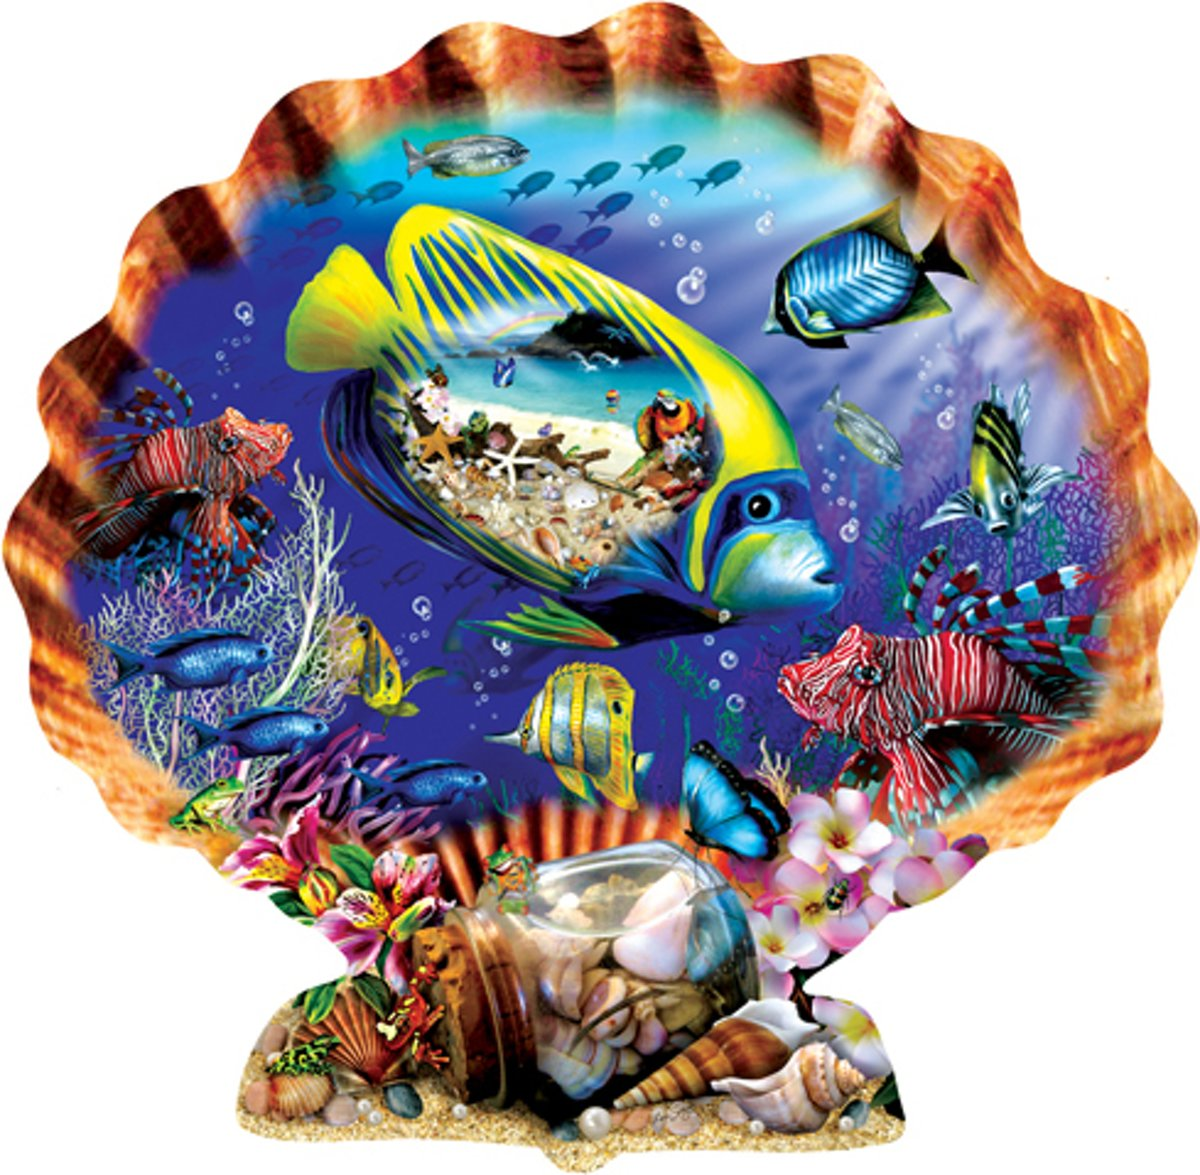 Souvenirs of the Sea - Sunsout Shaped puzzle